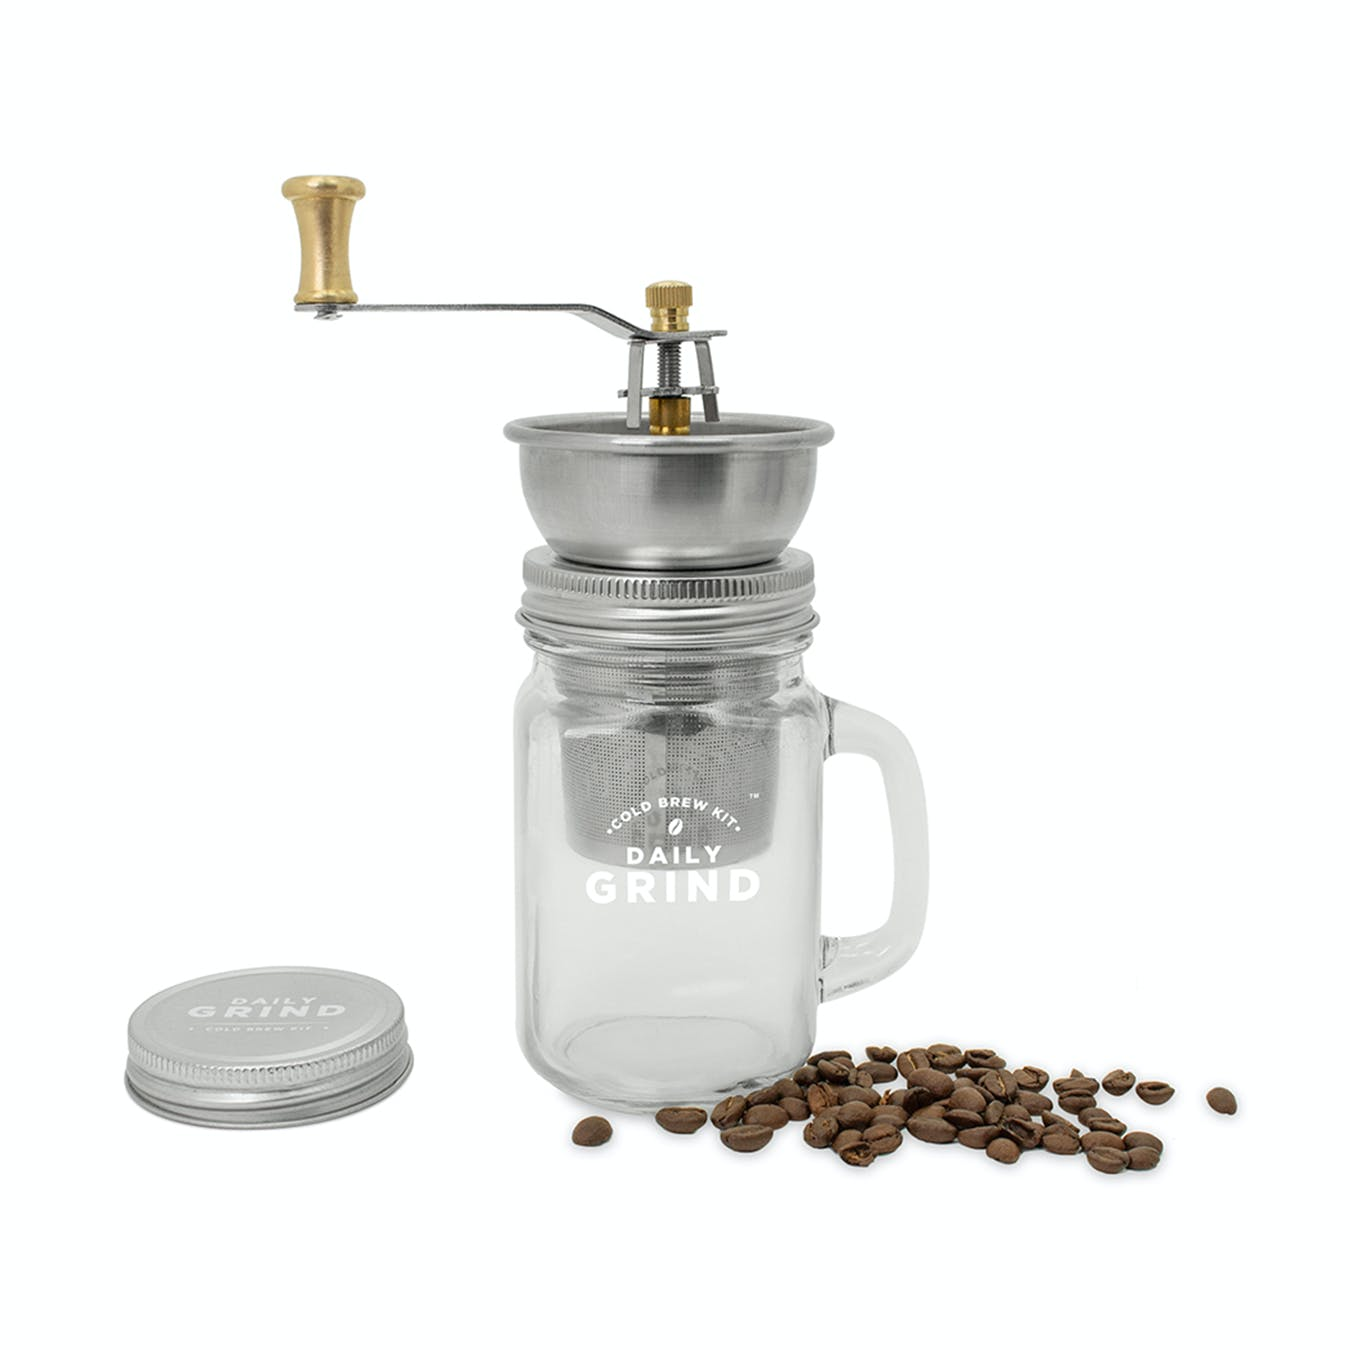 LUCKIES Daily Grind Cold Brew Coffee Set